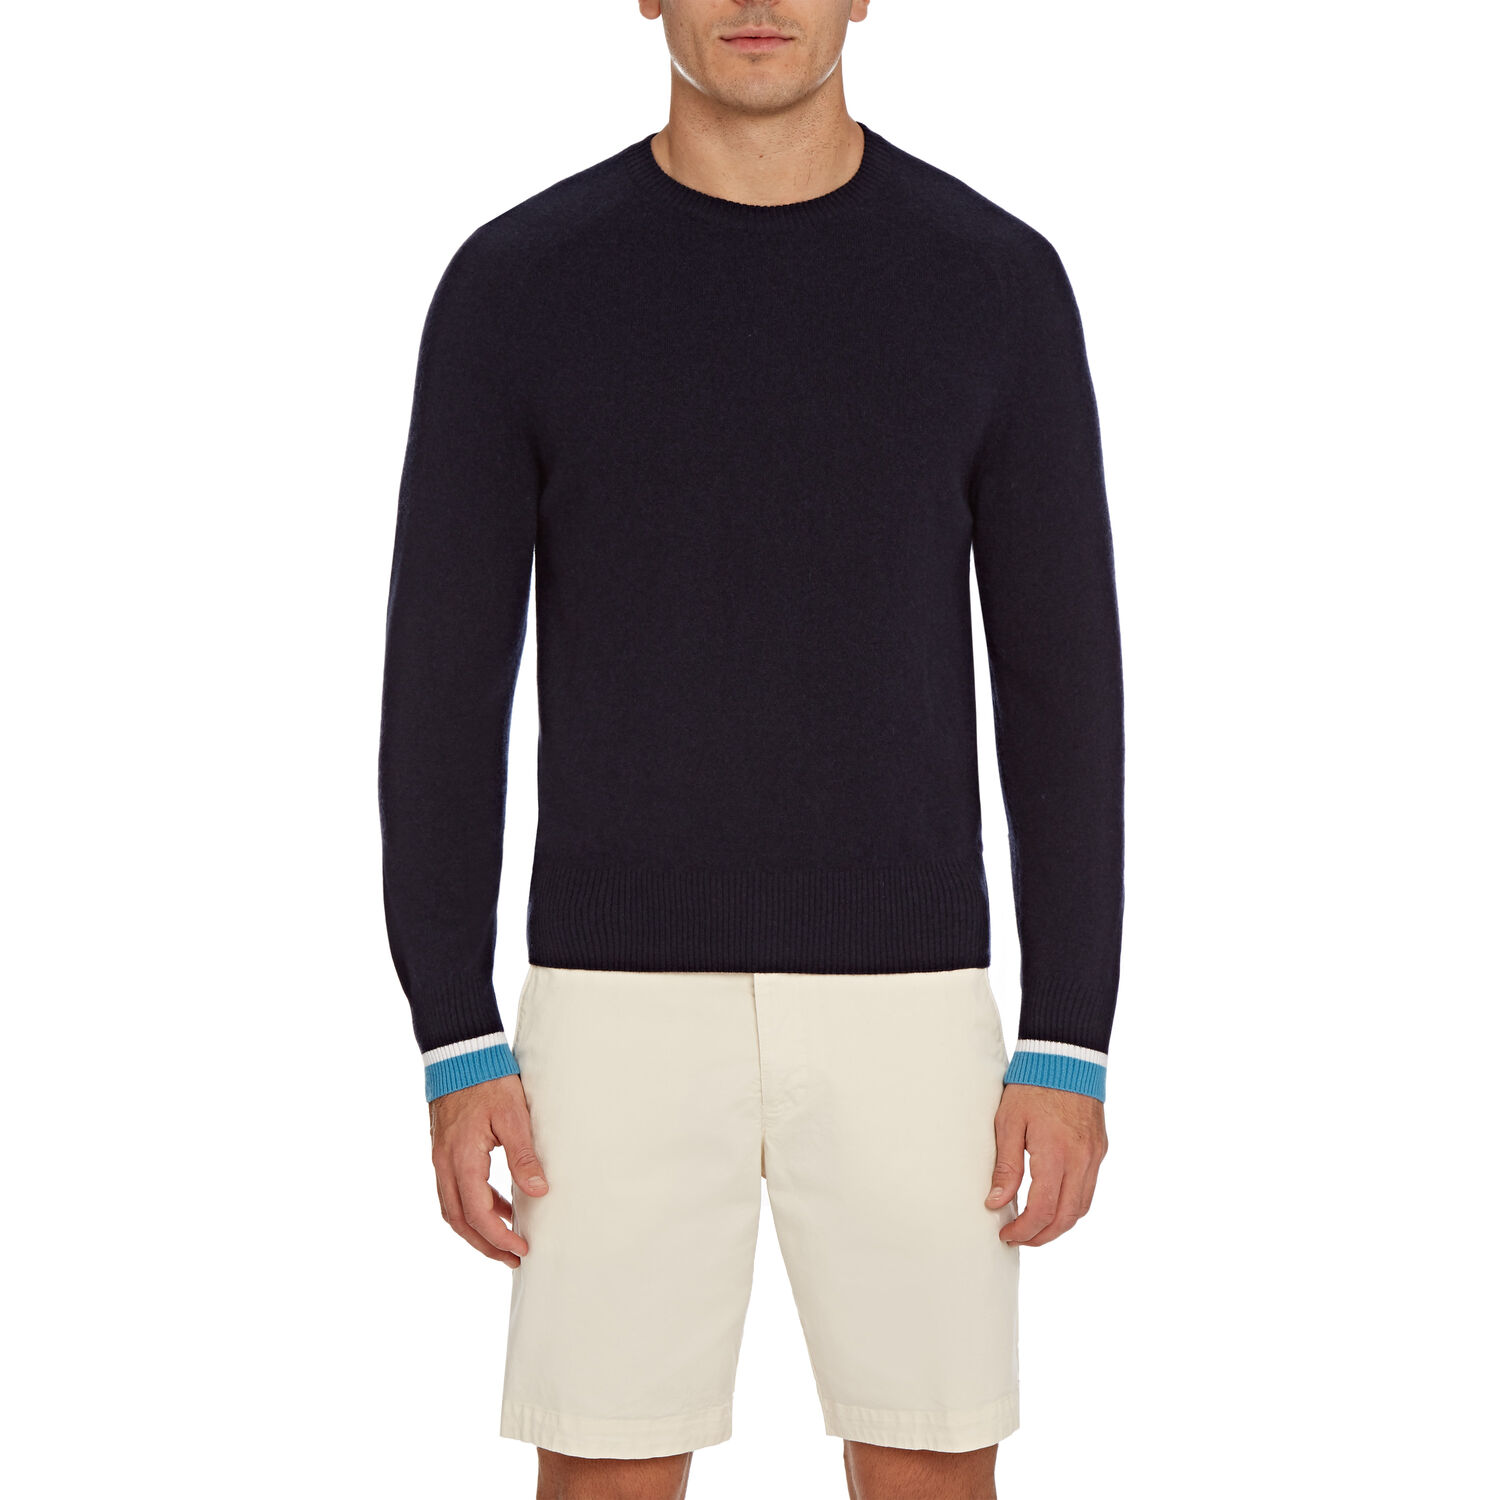 Orlebar Brown Ethan Cashmere NAVY/BAHAMA BLUE